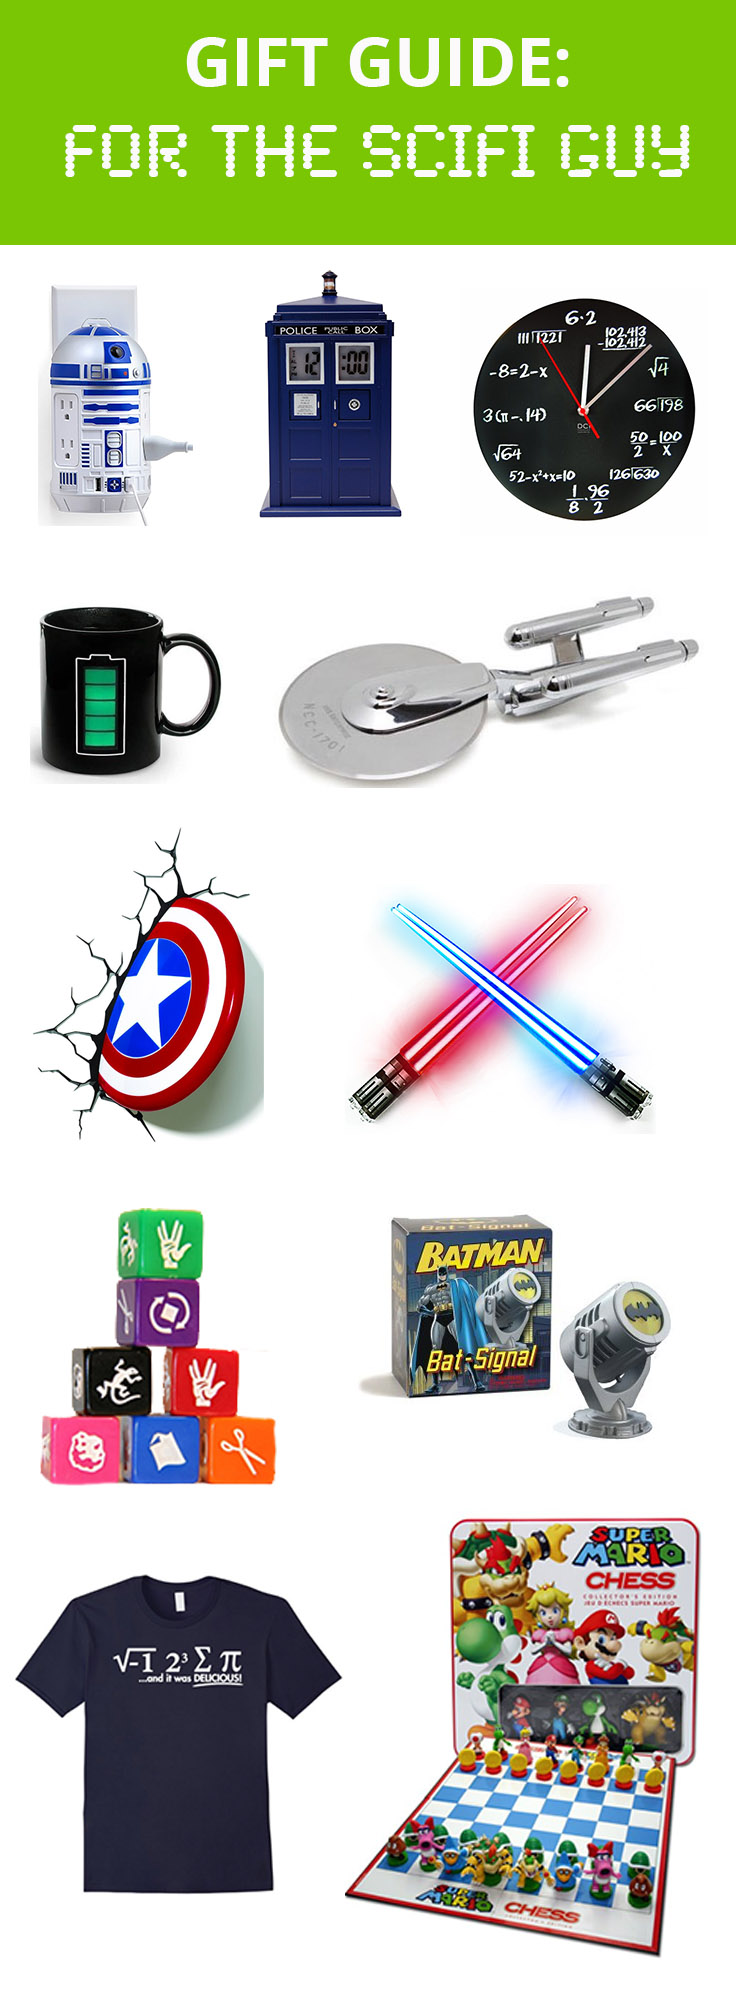 Gift guide for him: Your Sci-Fi Guy